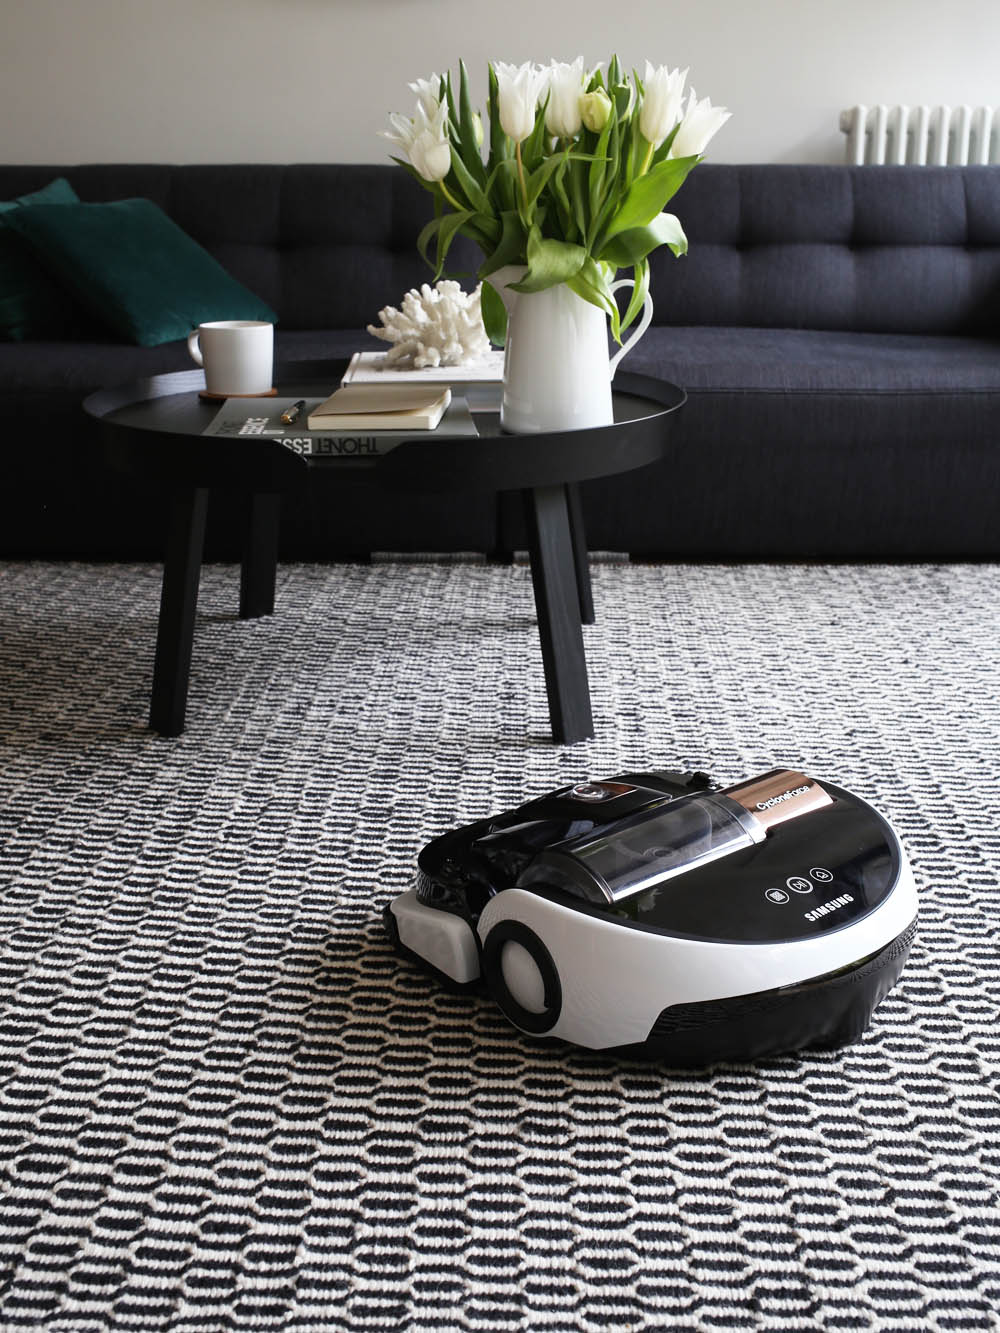 Samsung VR9000 Powerbot - cordless robot vacuum cleaner | styling and photography by Design Hunter